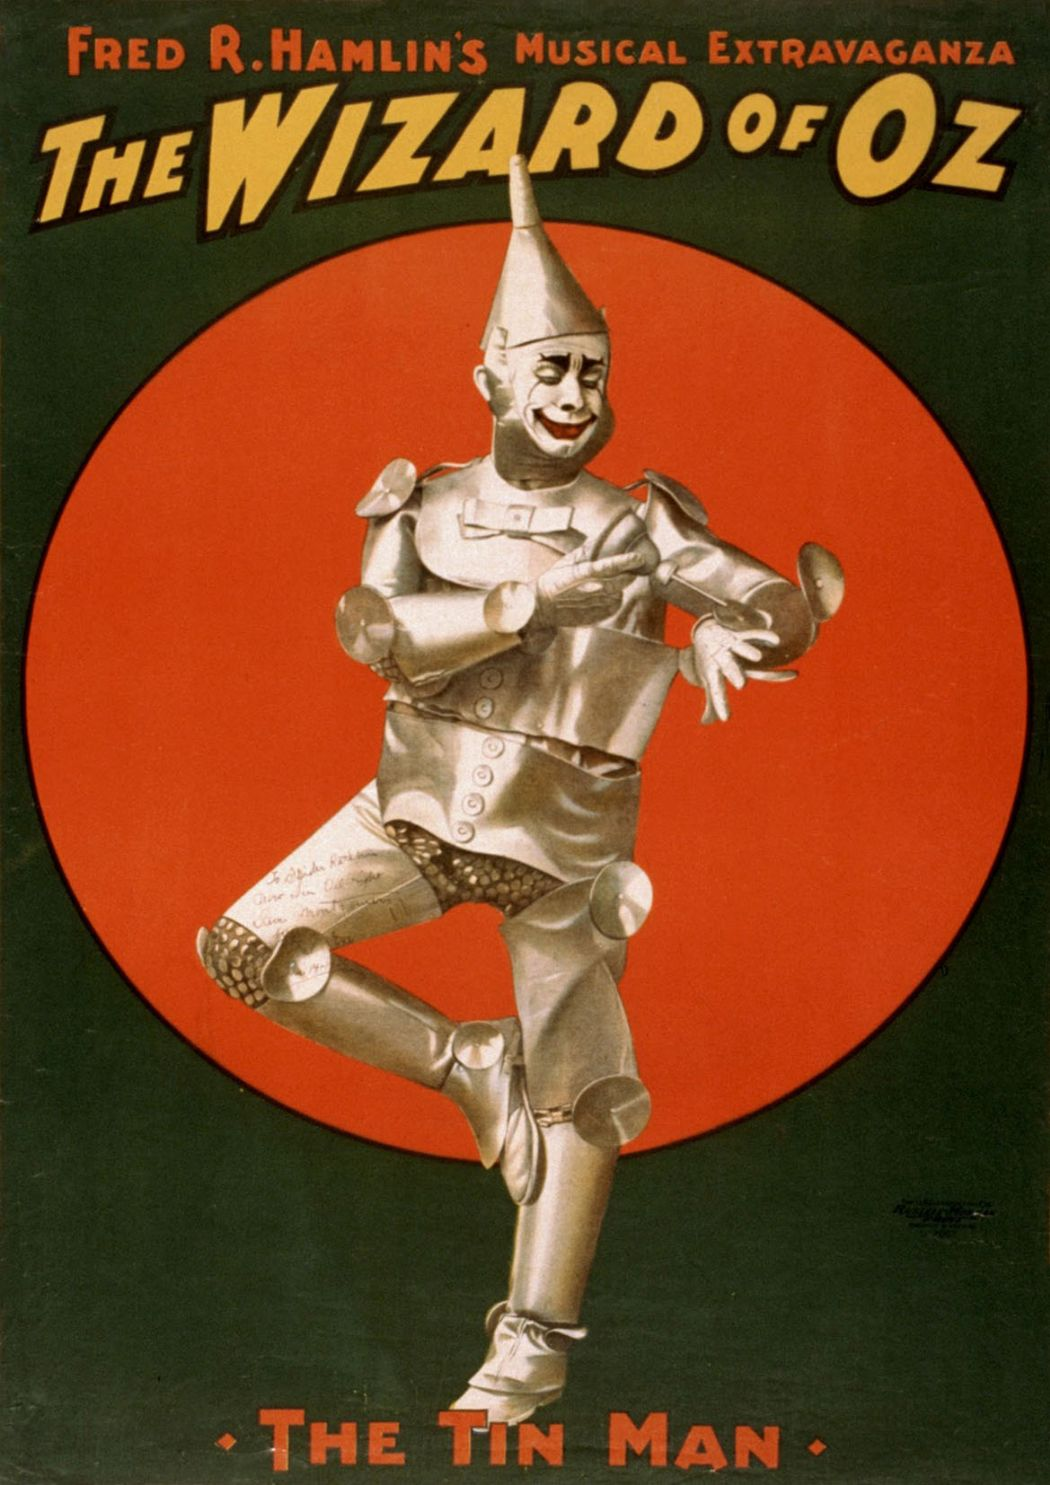 The Tin Man From the Wizard of Oz. Vintage Film/Movie/Musical Print/Poster. Sizes: A4/A3/A2/A1 (002818)